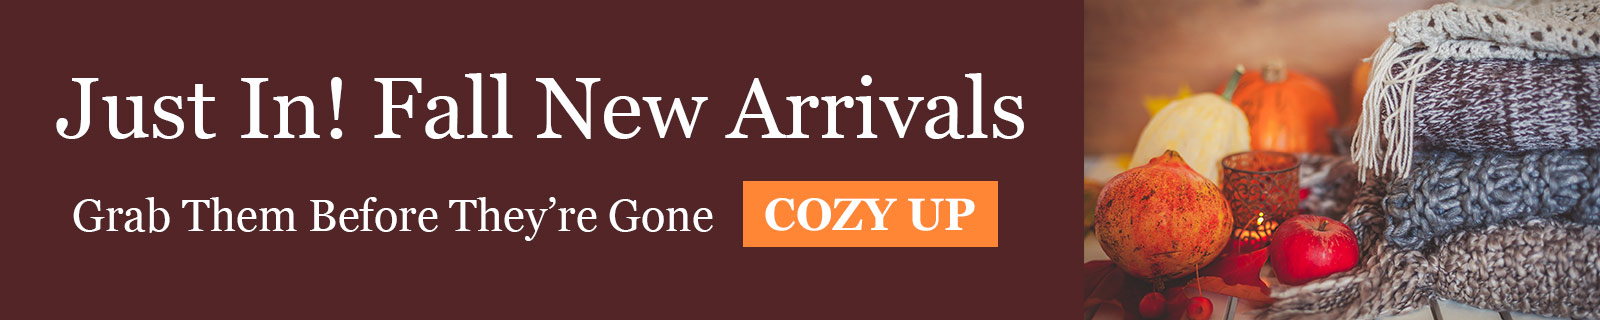 Just In! Fall New Arrivals - Grab Them Before They're Gone - COZY UP